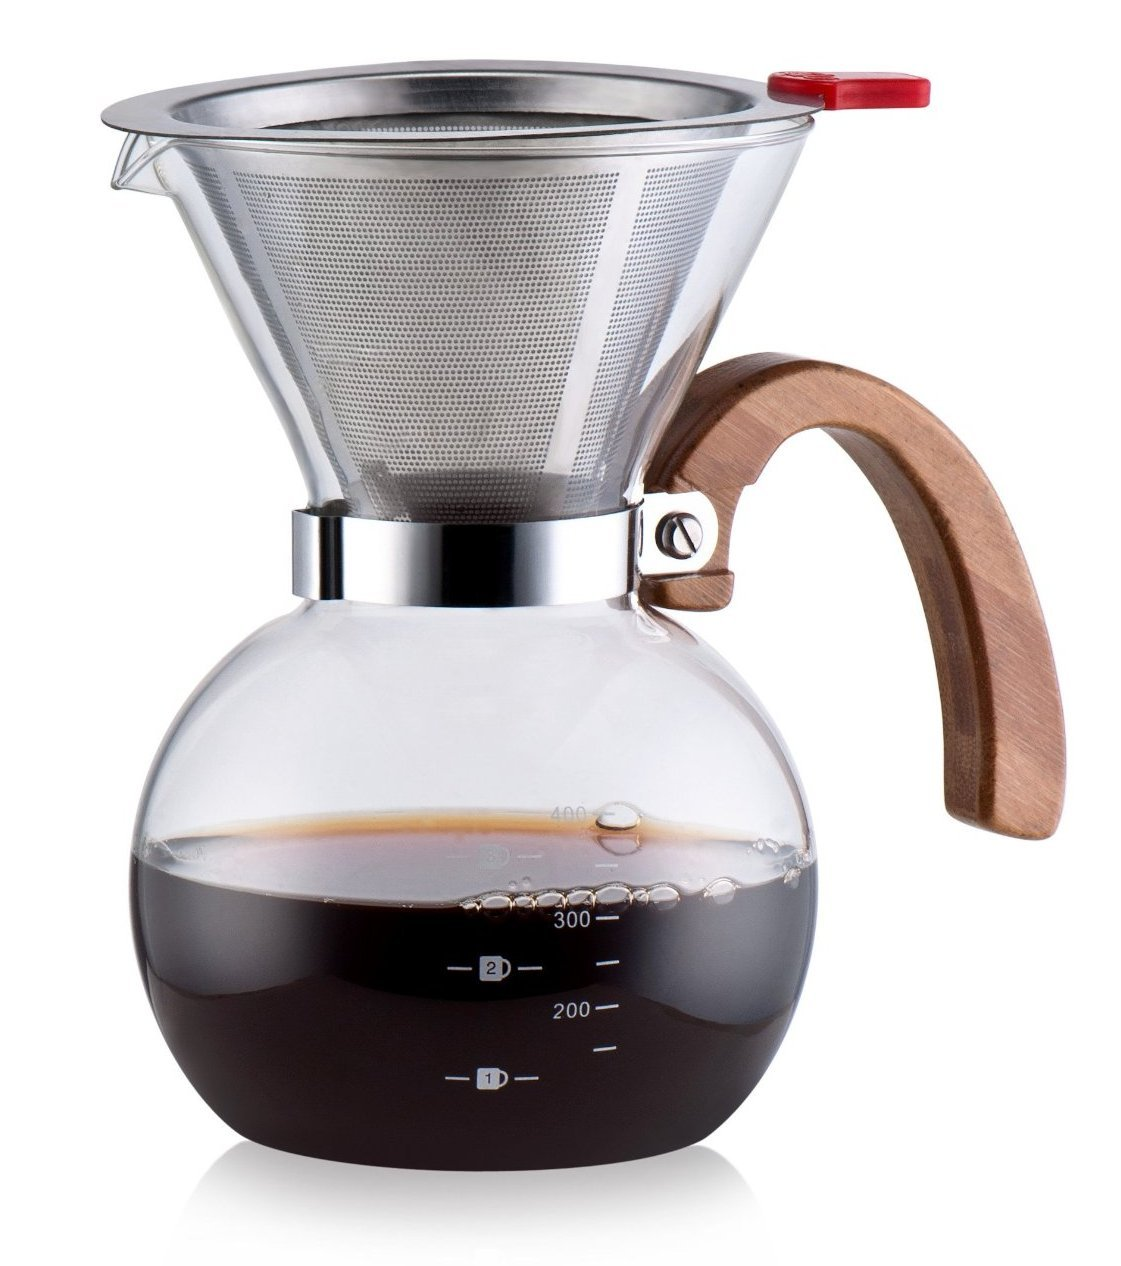 Pour Over Coffee Maker With Built In Filter : Diguo Glass Mini Coffeemaker Pour Over Coffee Maker, Decanter Coffee Brewer with Stainless Steel ...